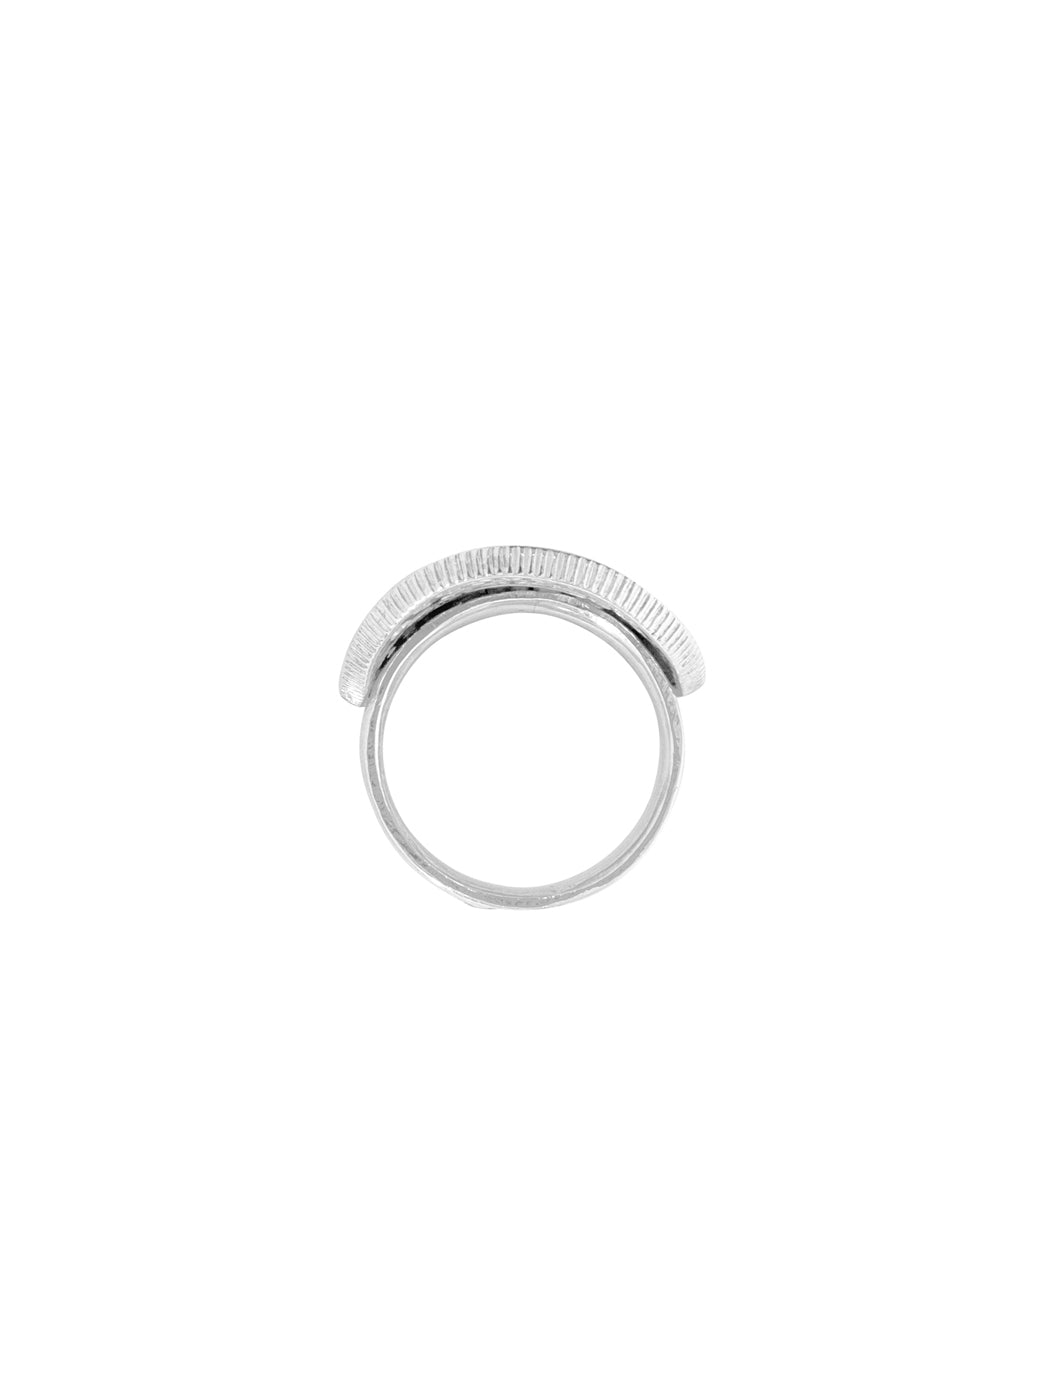 Fiorina Jewellery Men's Bent Coin Ring Side View